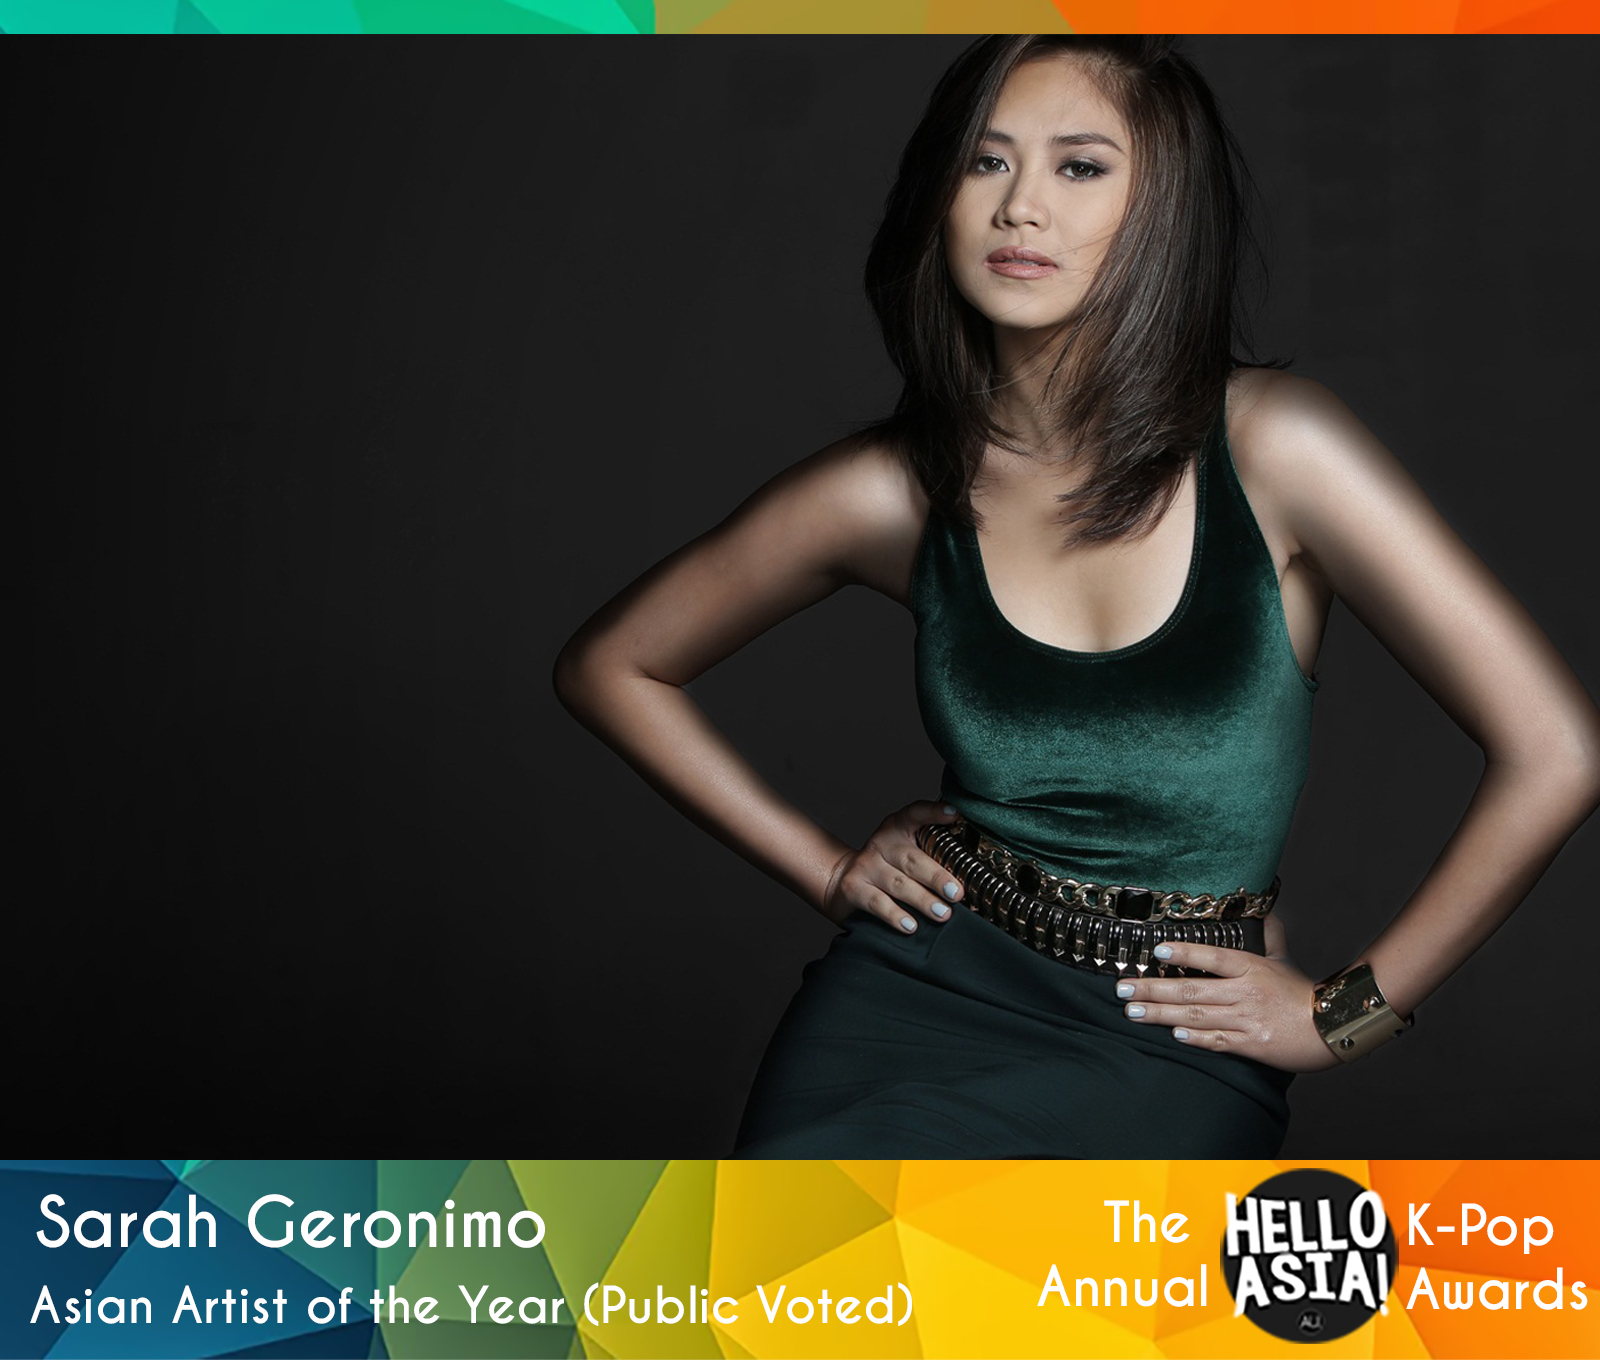 Philippine pop star Sarah Geronimo takes out 2015 Asian Artist of the Year Award